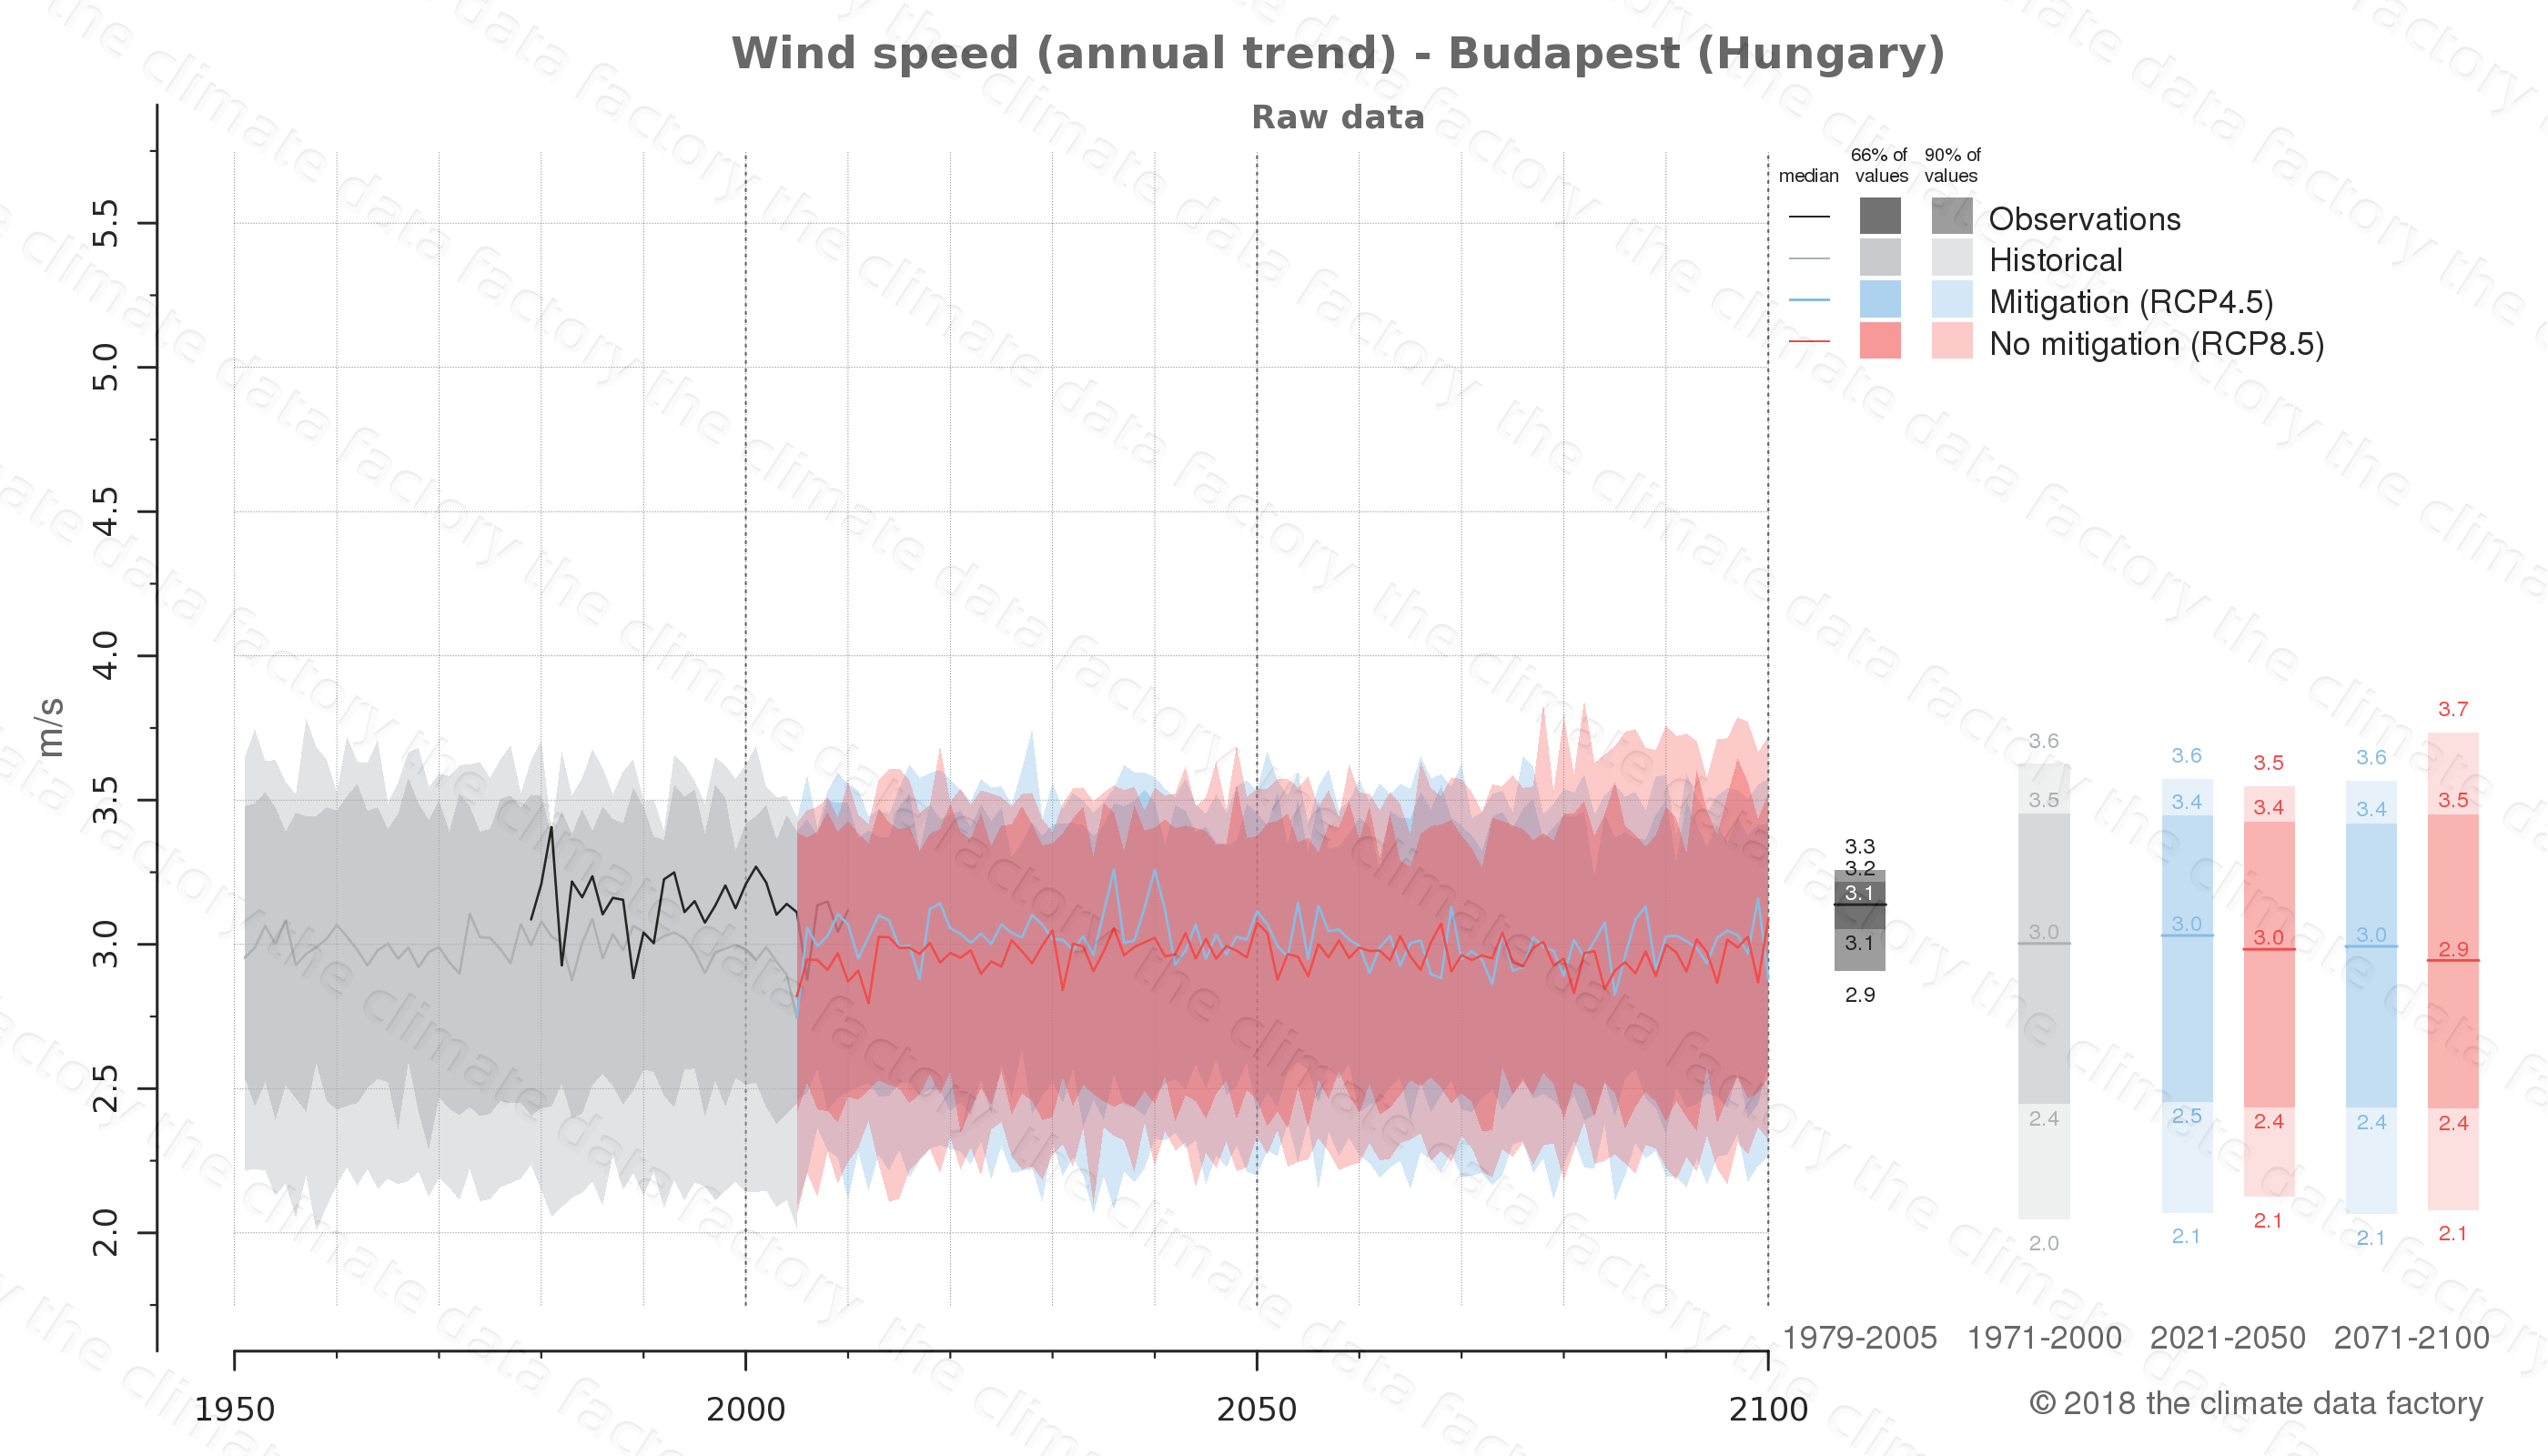 climate change data policy adaptation climate graph city data wind-speed budapest hungary